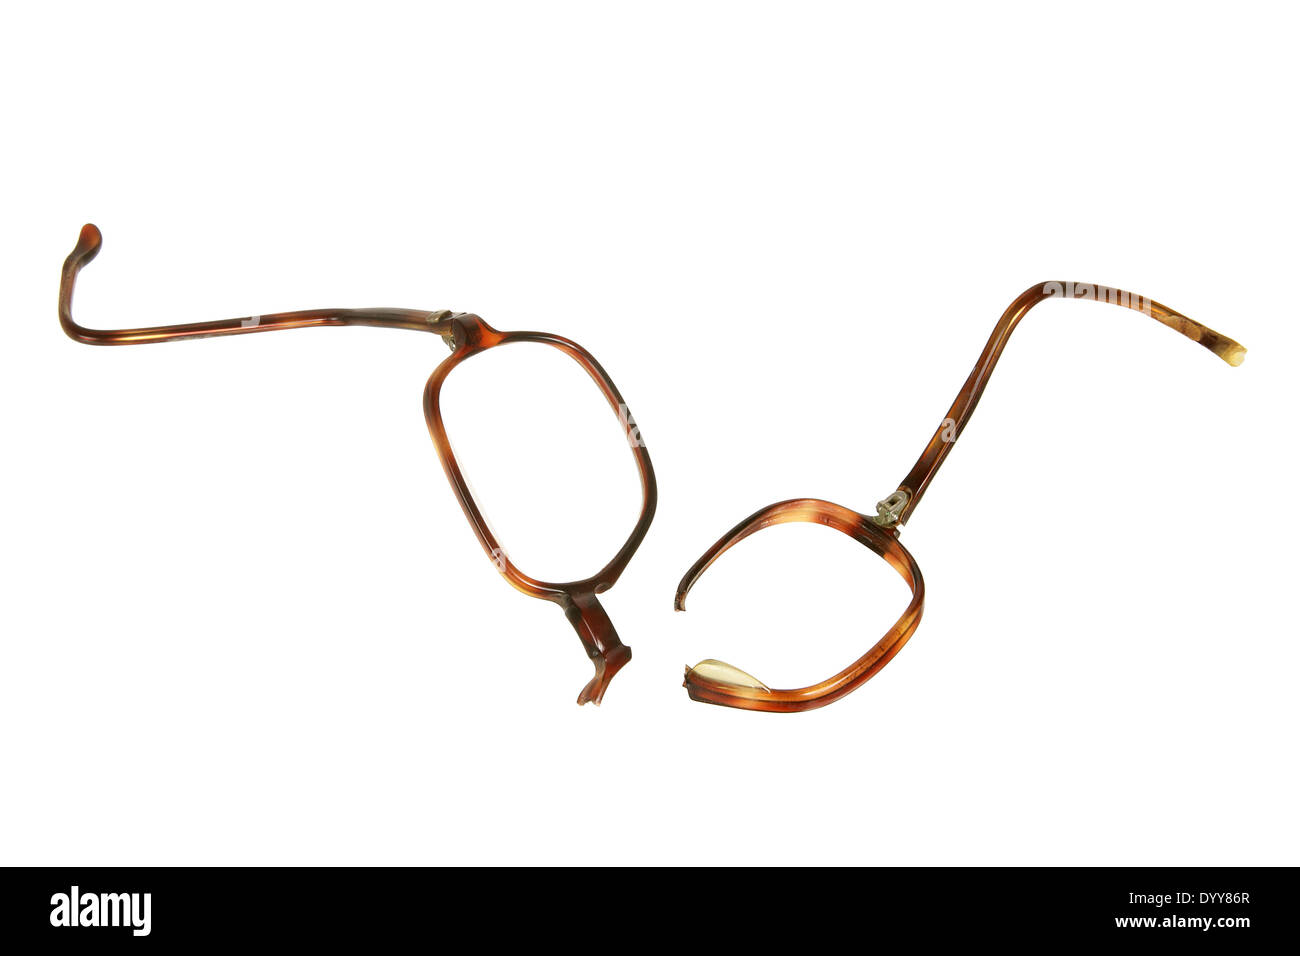 Broken Eyeglasses - Stock Image